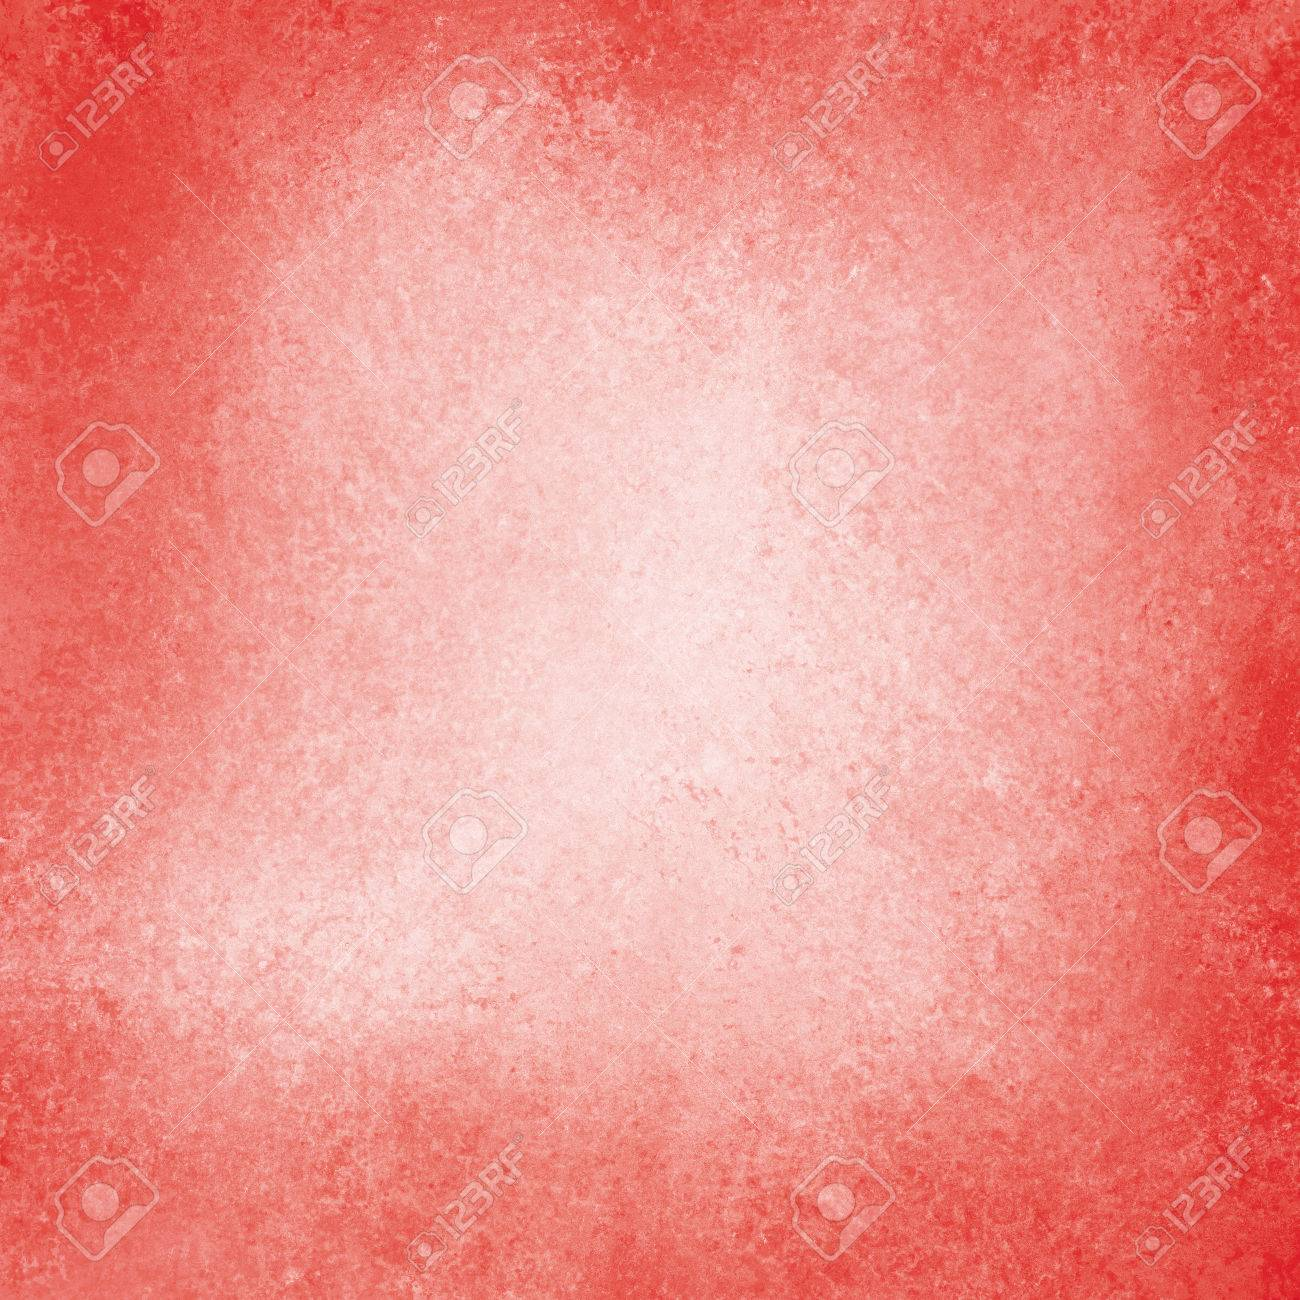 Old Red Paper Background Off White Center Vintage With Burnt Edges Or Grunge